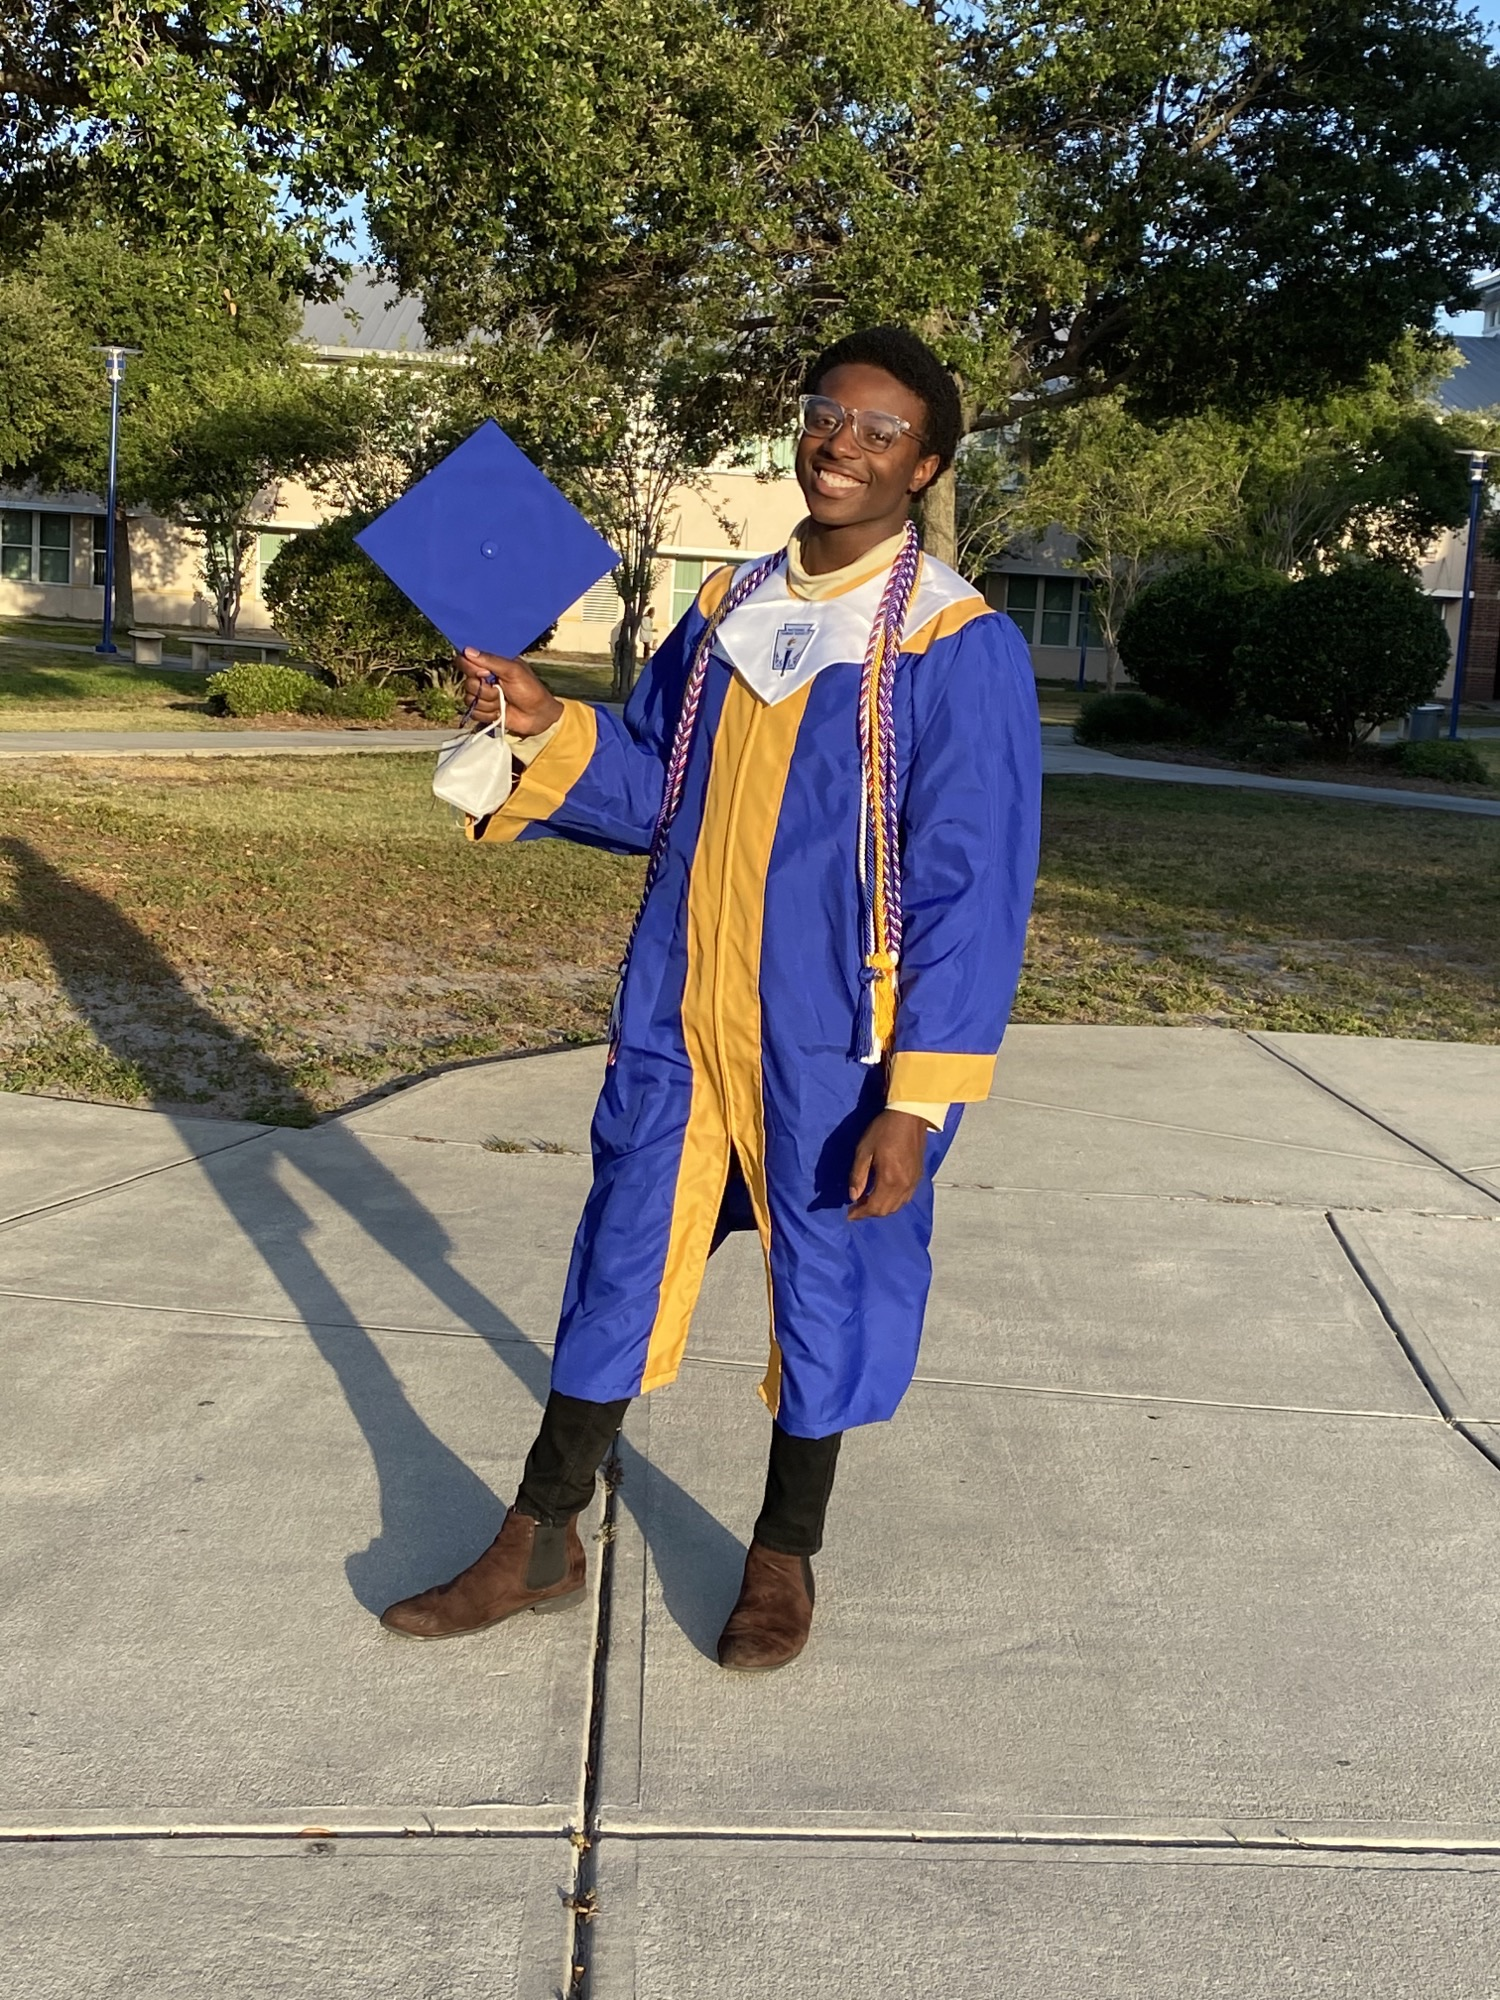 A young man in blue and gold graduation robes holding his mortarboard hat.